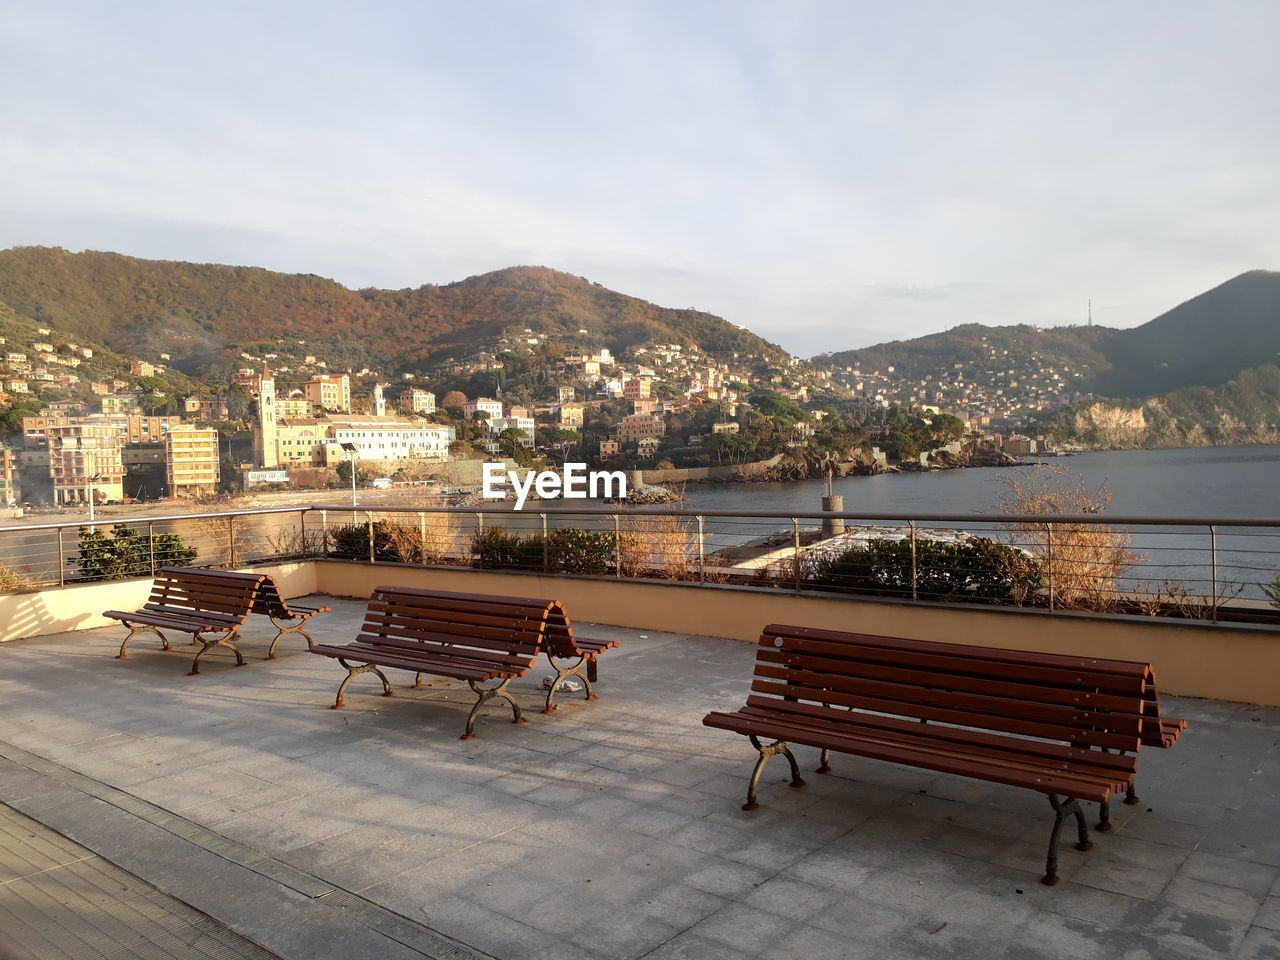 seat, architecture, mountain, bench, built structure, water, building exterior, sky, city, nature, day, building, outdoors, mountain range, sitting, empty, chair, relaxation, river, cityscape, promenade